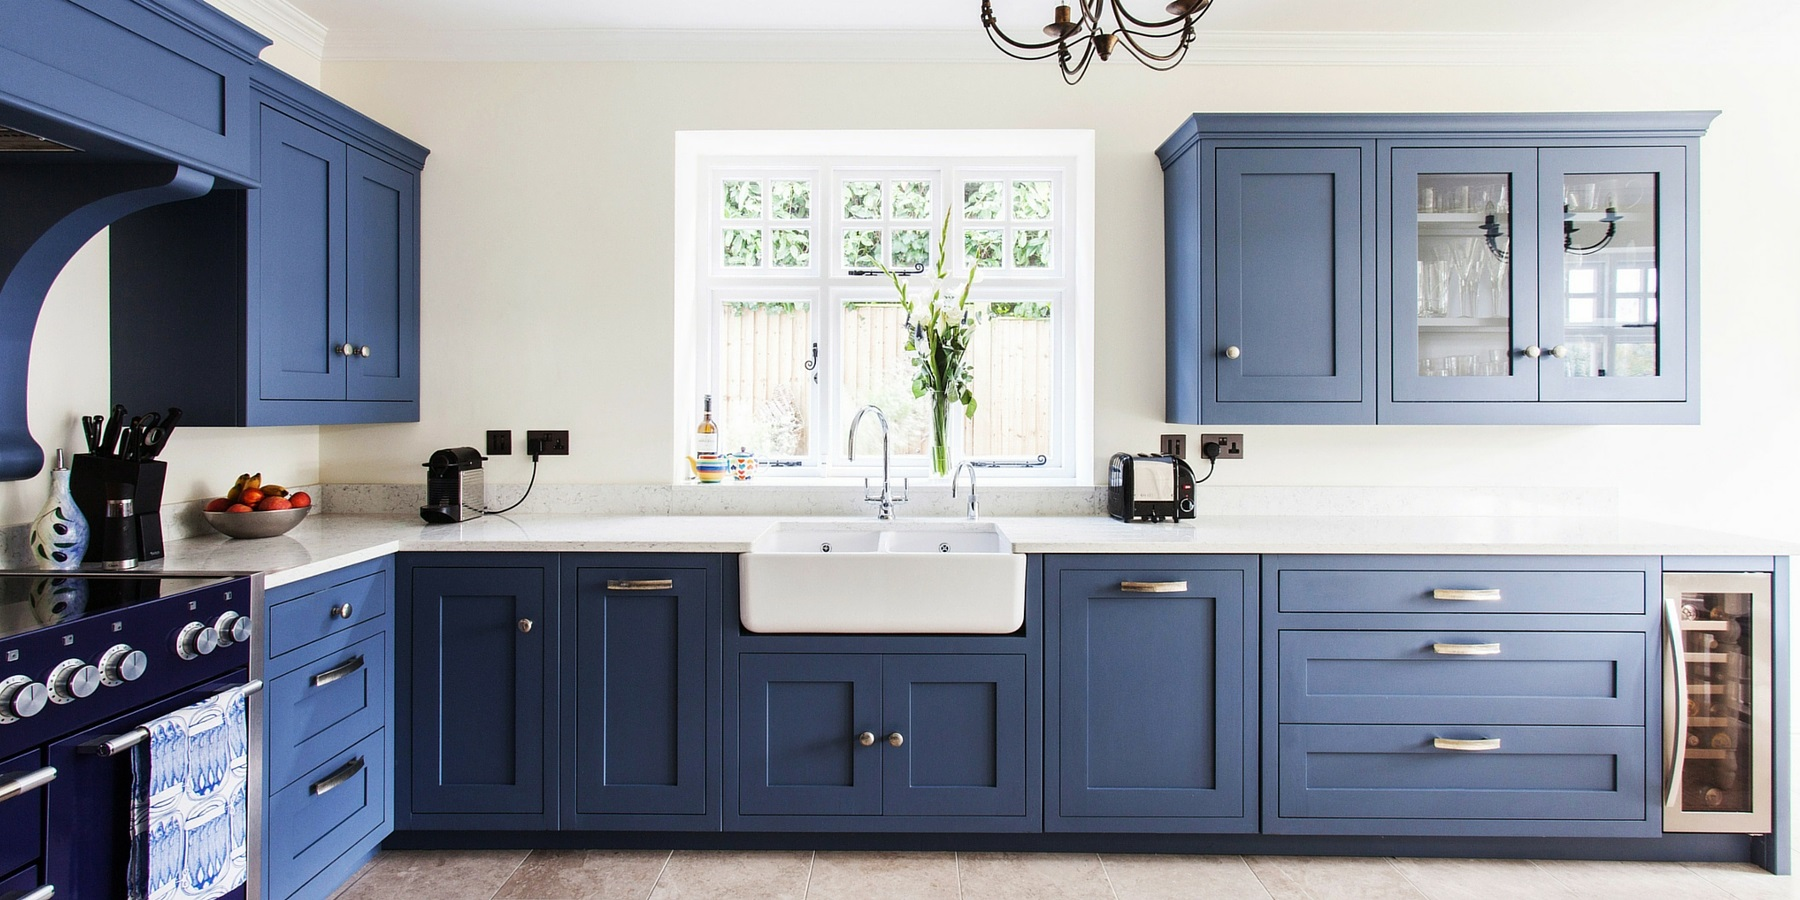 Burlanes Interiors - A Sleek Spacious Kitchen in Sevenoaks